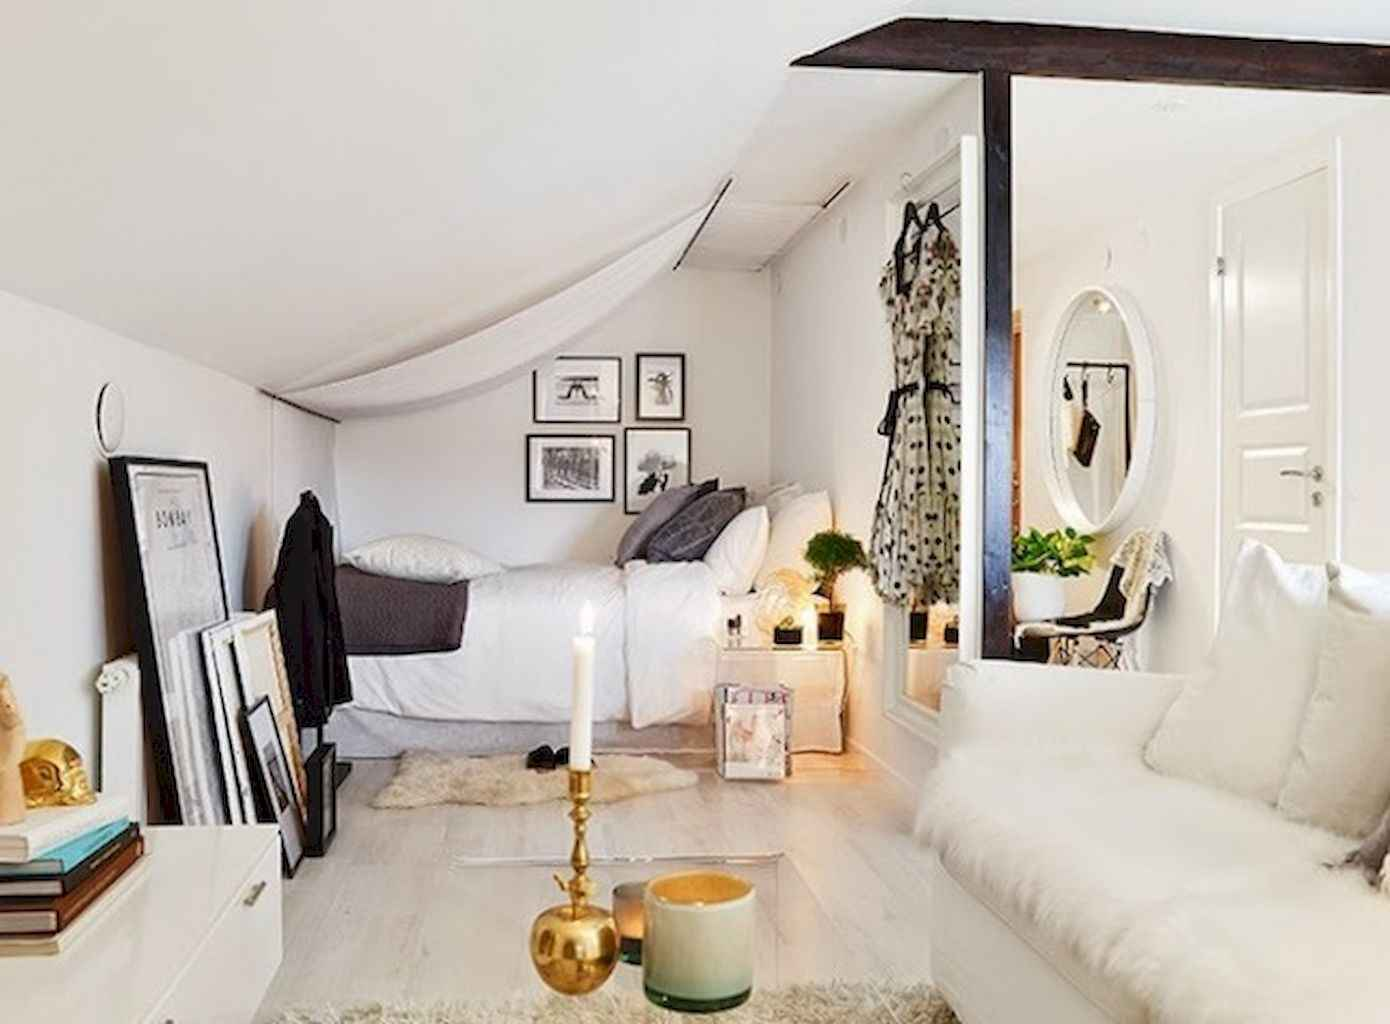 Cool small apartment decorating ideas on a budget (5)